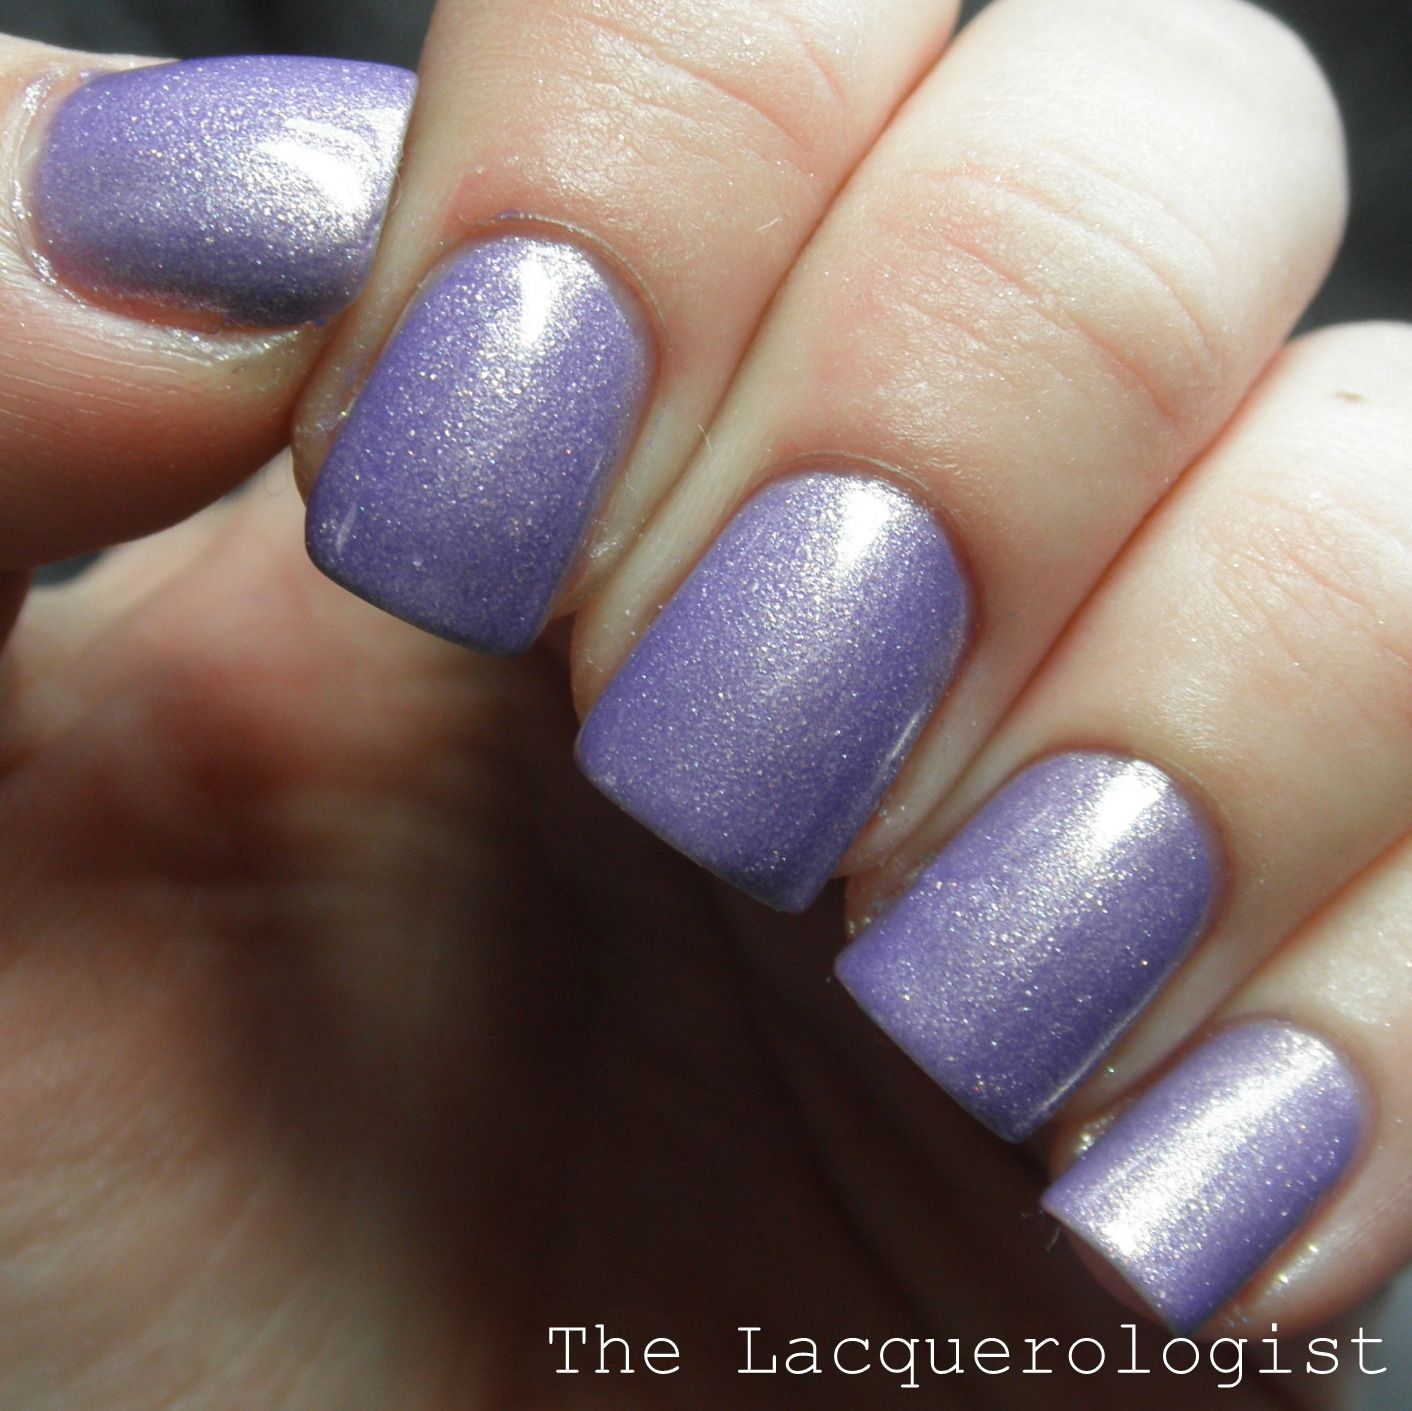 The Lacquerologist: Zoya Awaken + Monet for Spring 2014: Swatches & Review!